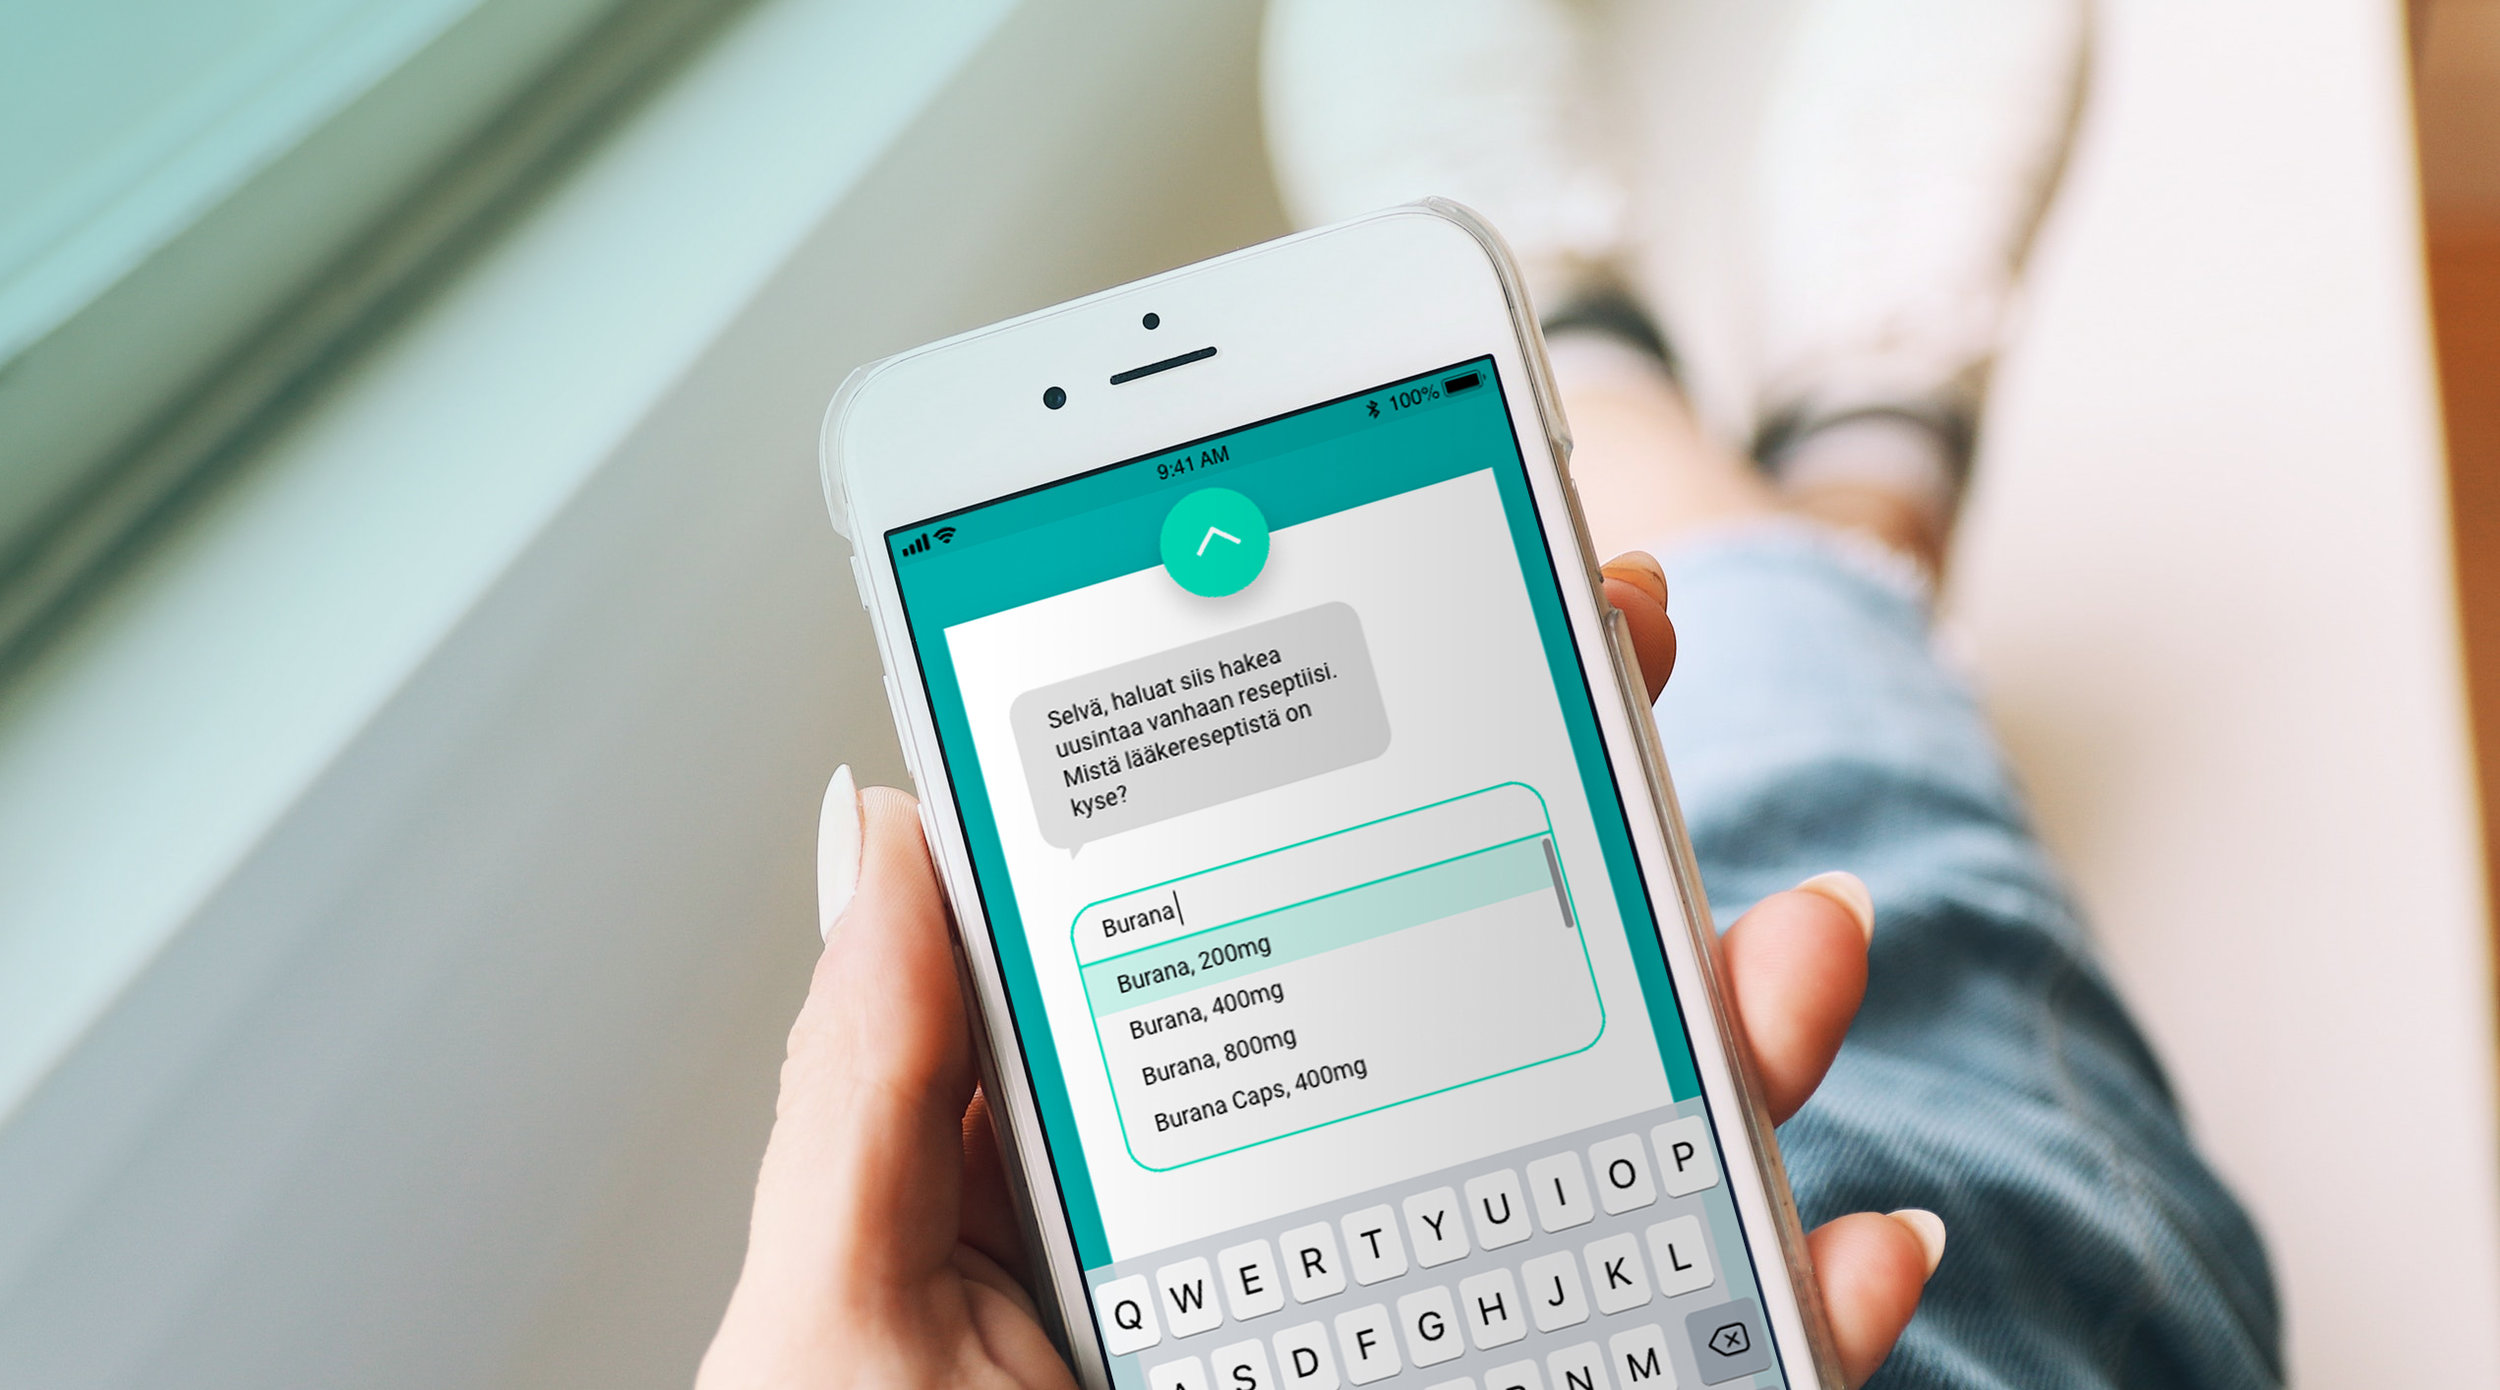 - The prescription can be renewed easily with conversational type user interface. The style was tested by users and preferred over traditional form due to enhanced user experience and smoothness.